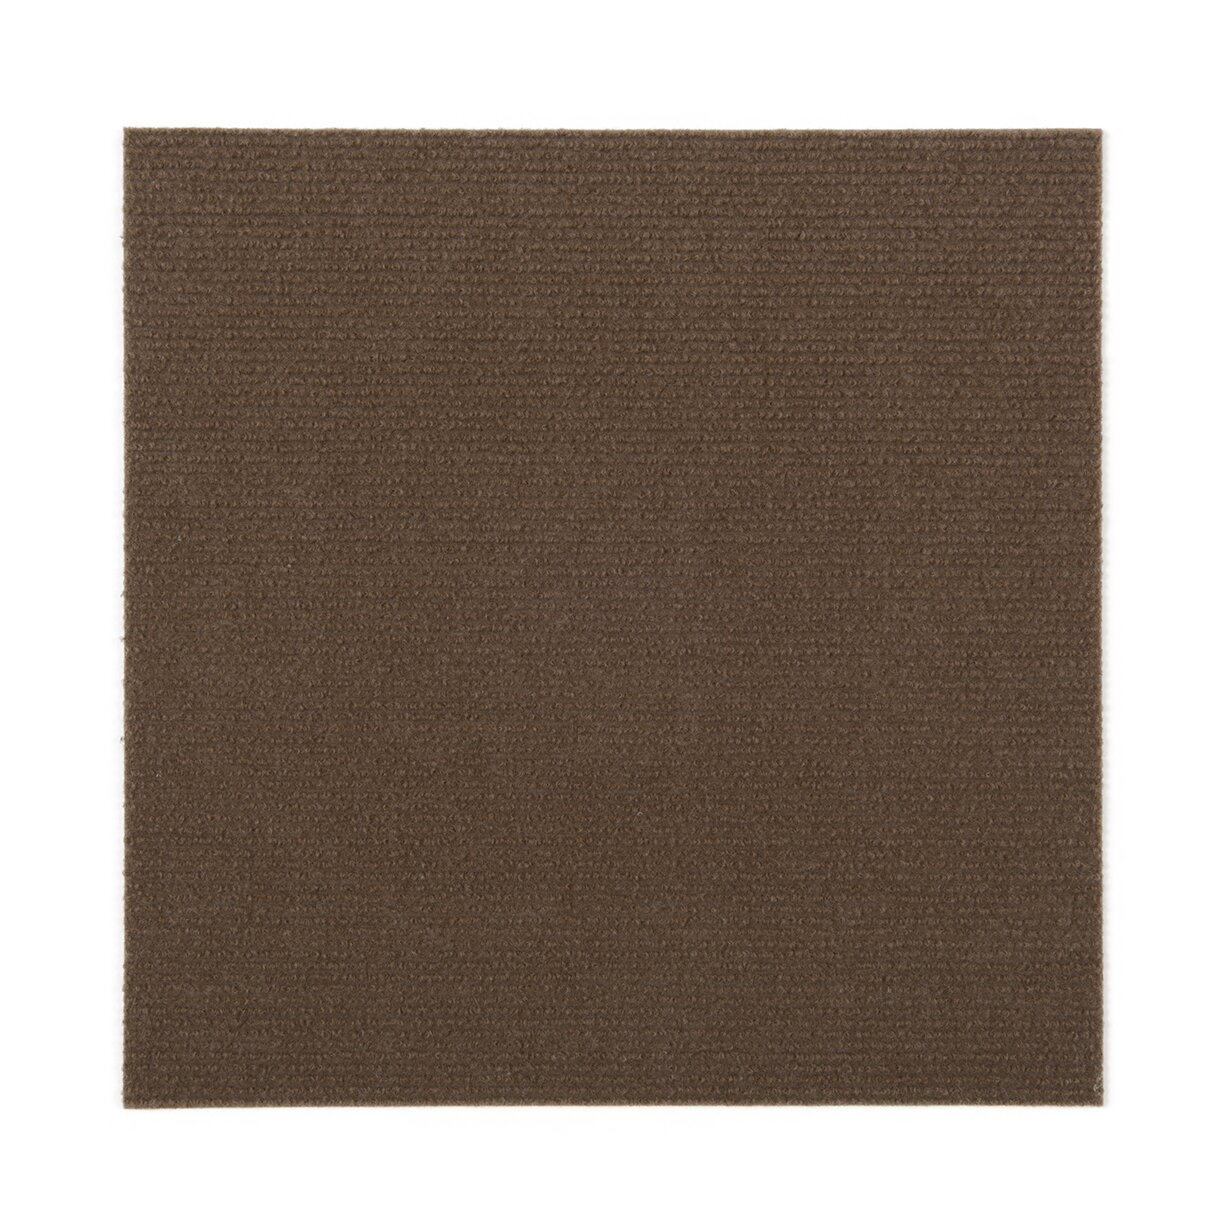 triluc 12 x 12 area rug in brown wayfair. Black Bedroom Furniture Sets. Home Design Ideas